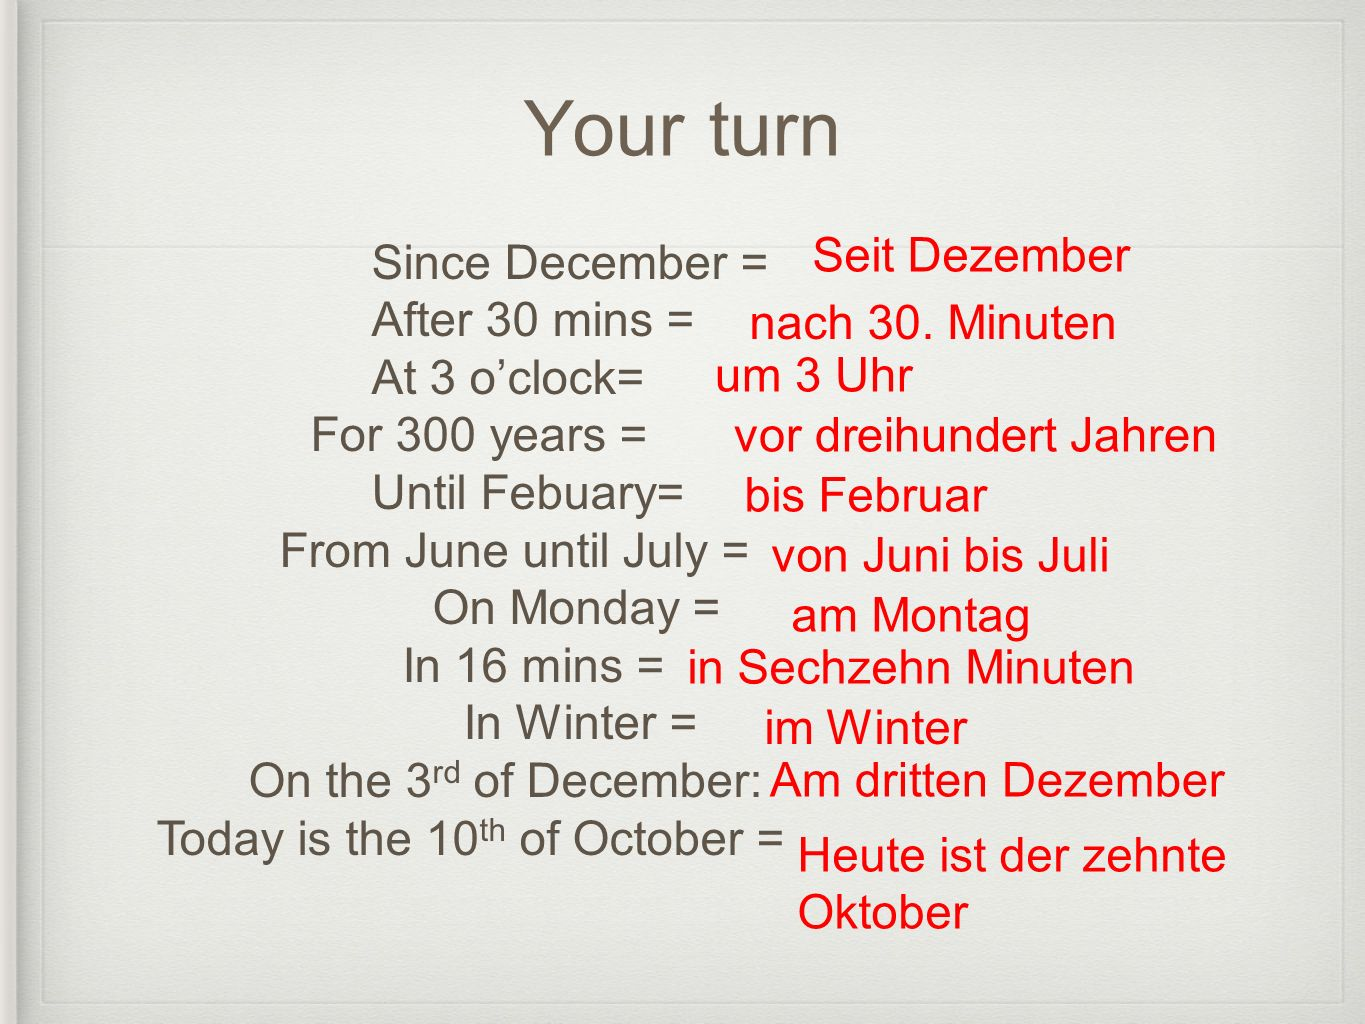 Your turn Since December = After 30 mins = At 3 oclock= For 300 years = Until Febuary= From June until July = On Monday = In 16 mins = In Winter = On the 3 rd of December: Today is the 10 th of October = Seit Dezember nach 30.